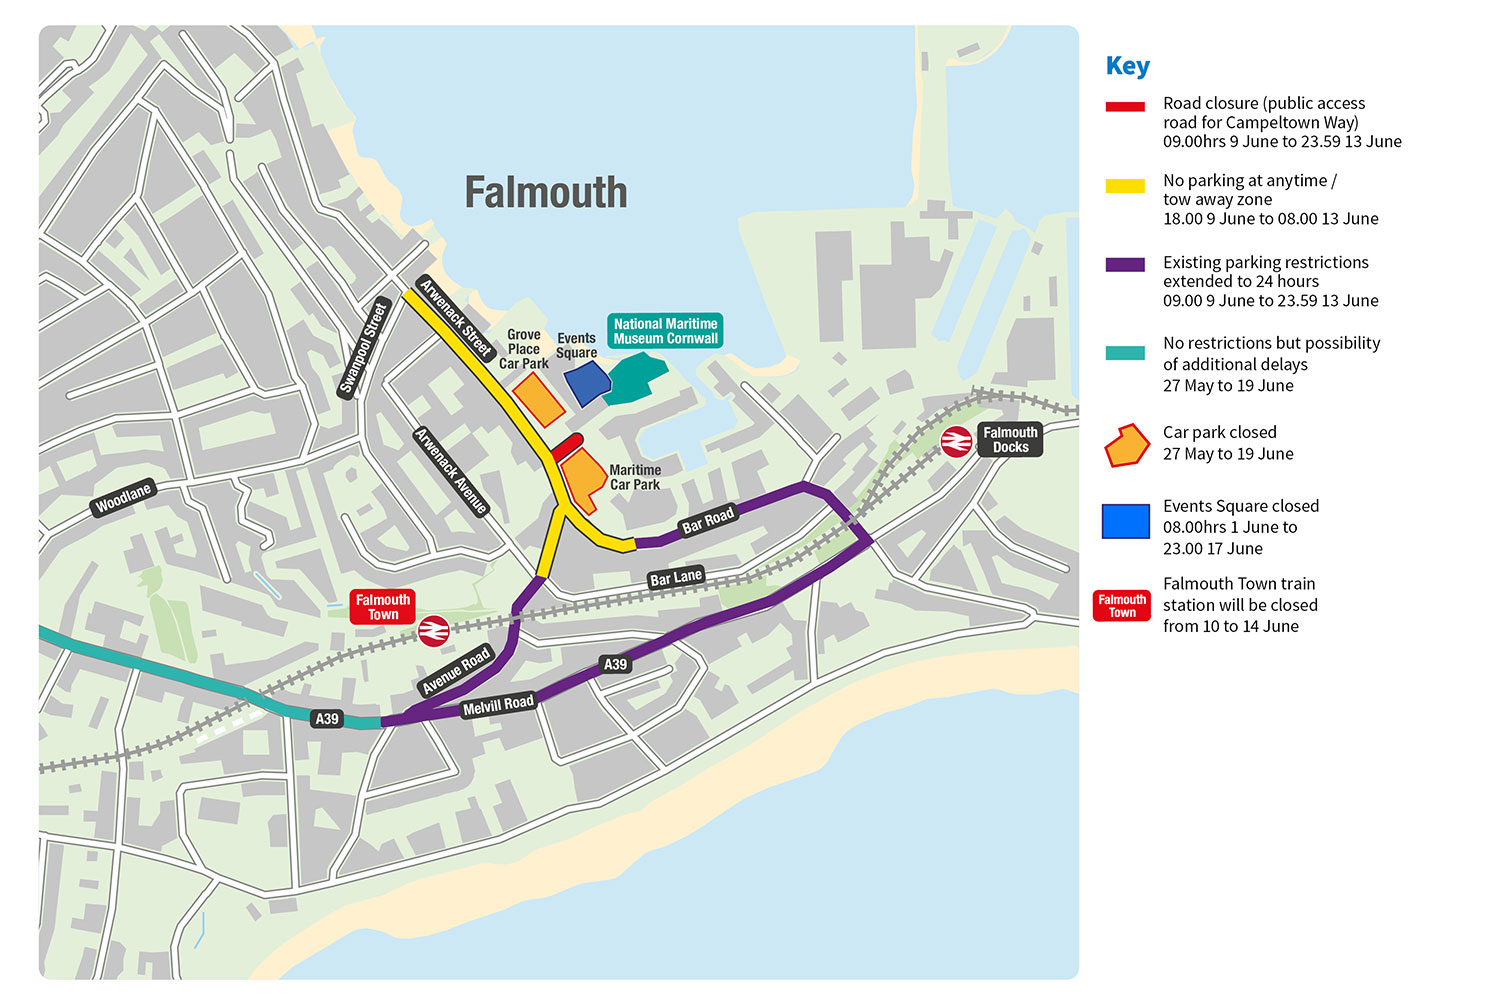 Map of access and diversion routes for G7 summit in Falmouth.